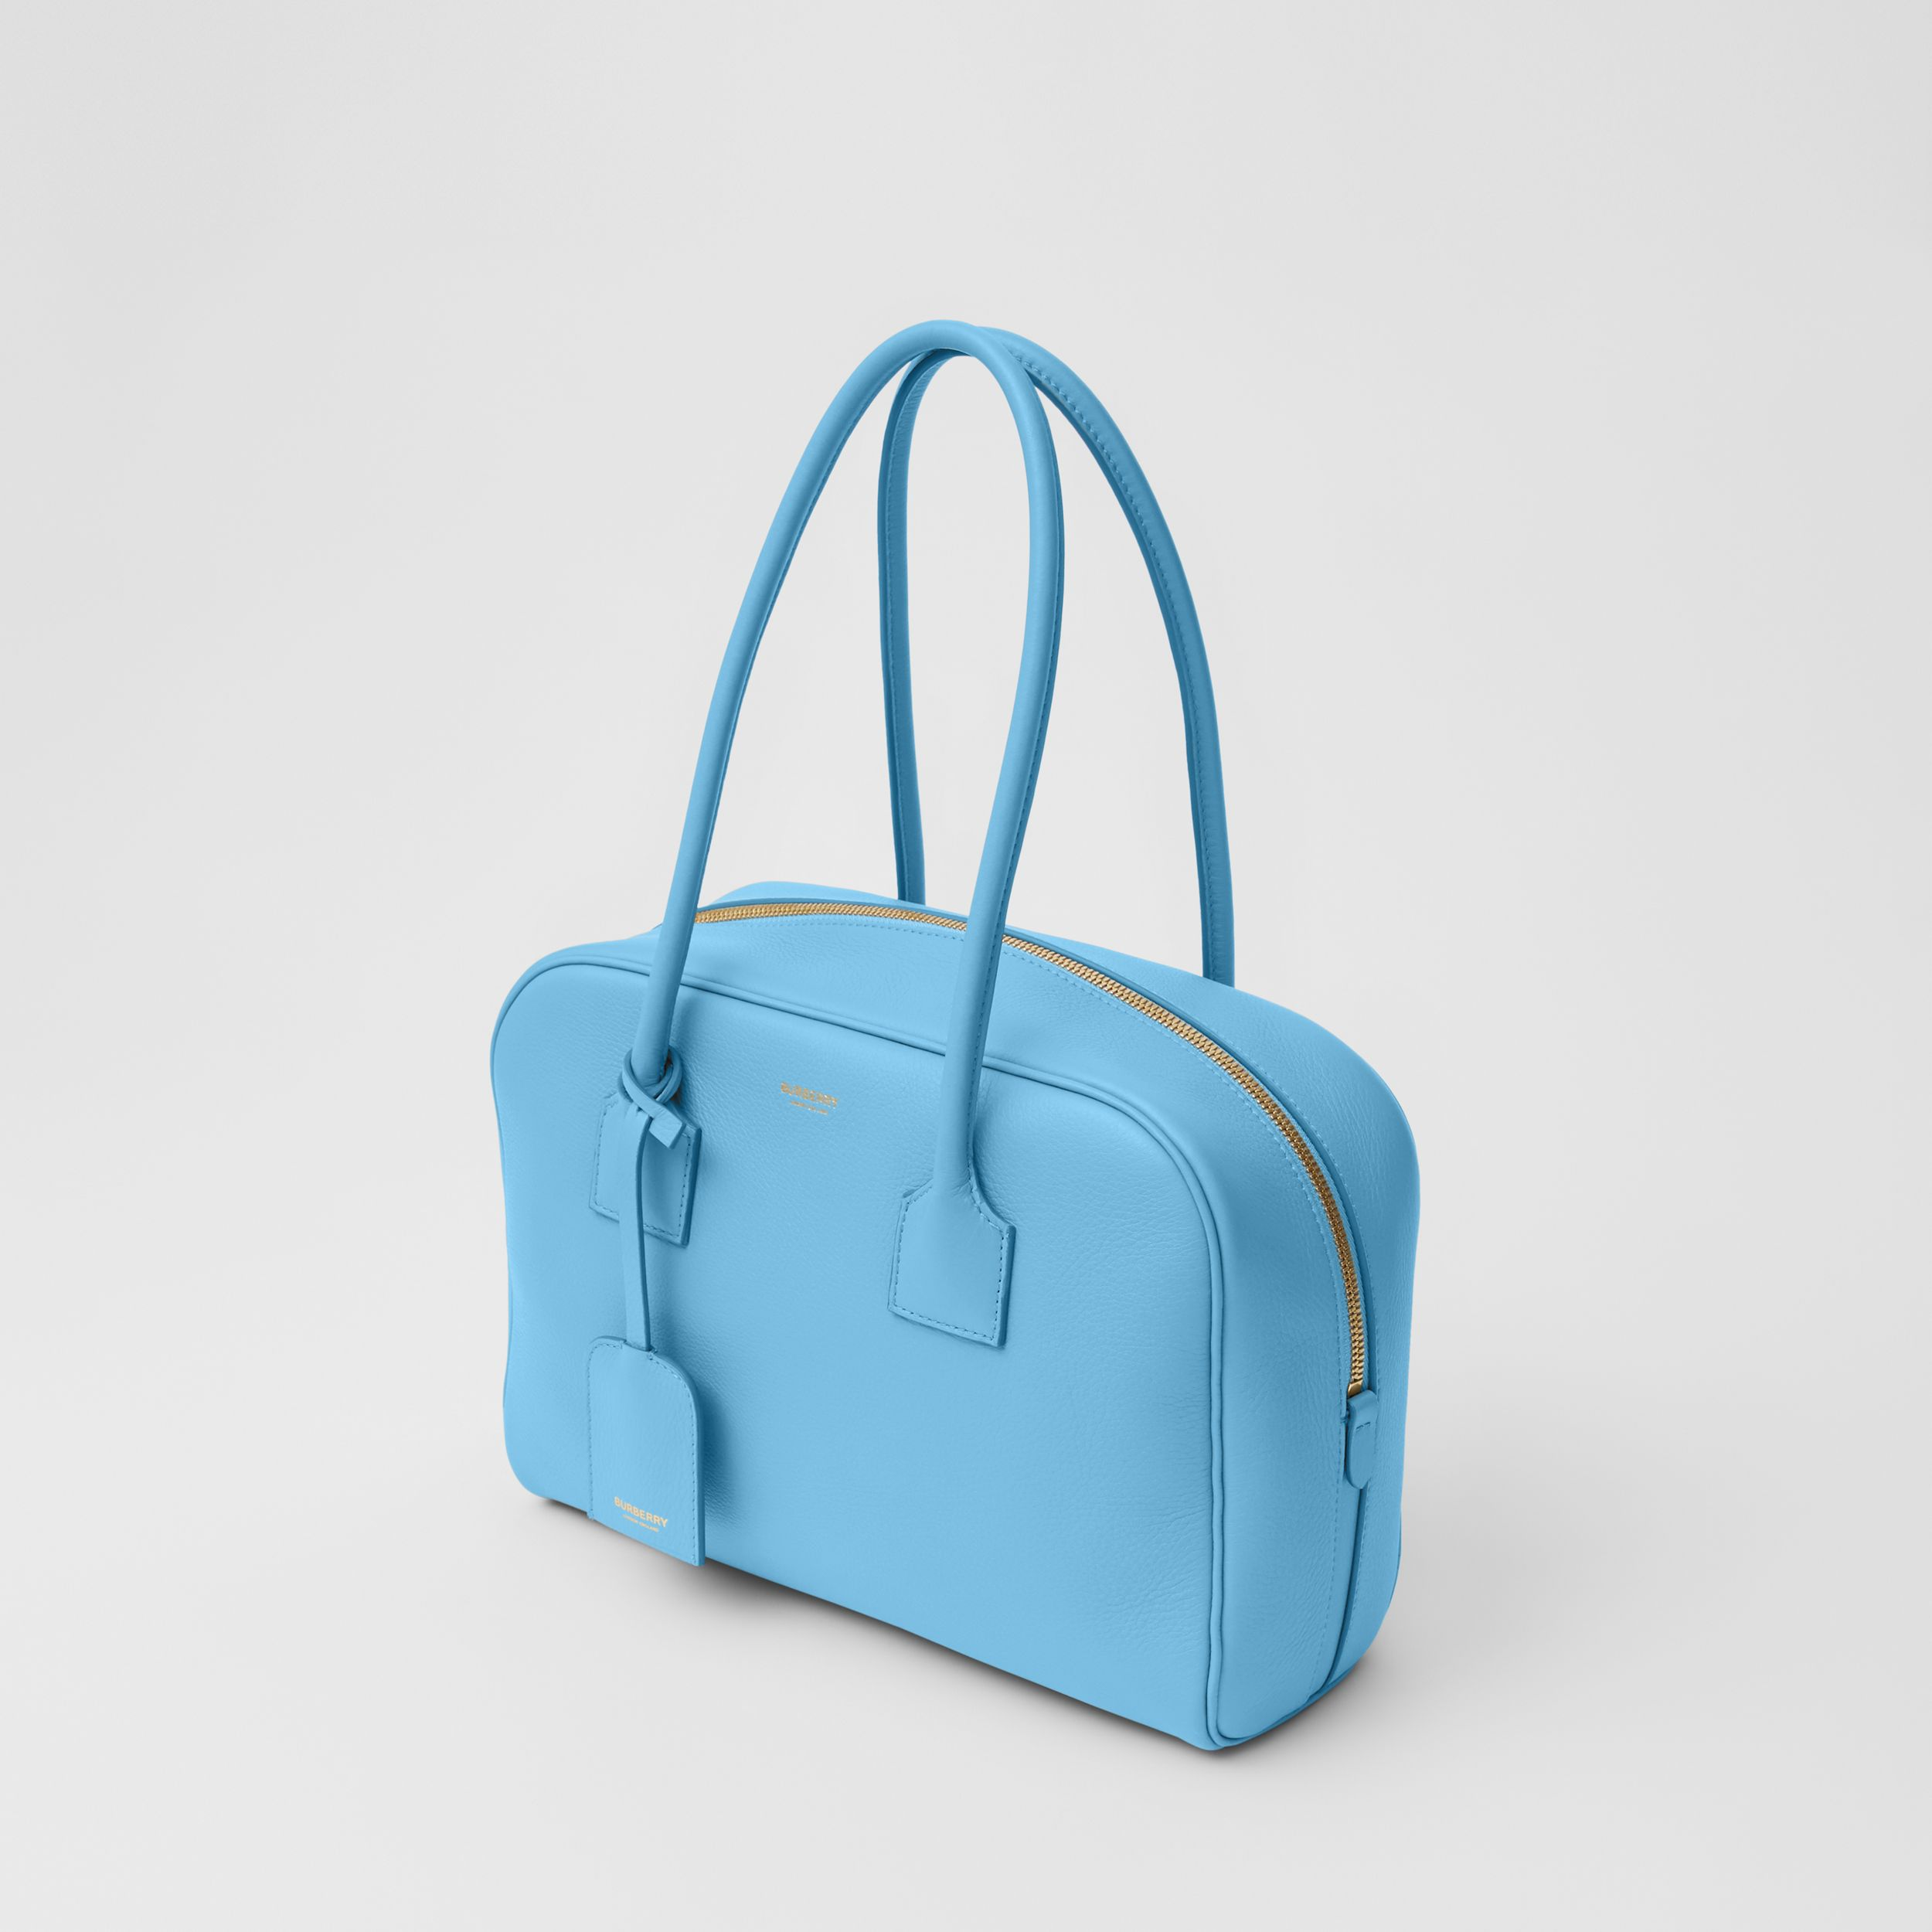 Medium Leather Half Cube Bag in Blue Topaz - Women | Burberry - 4